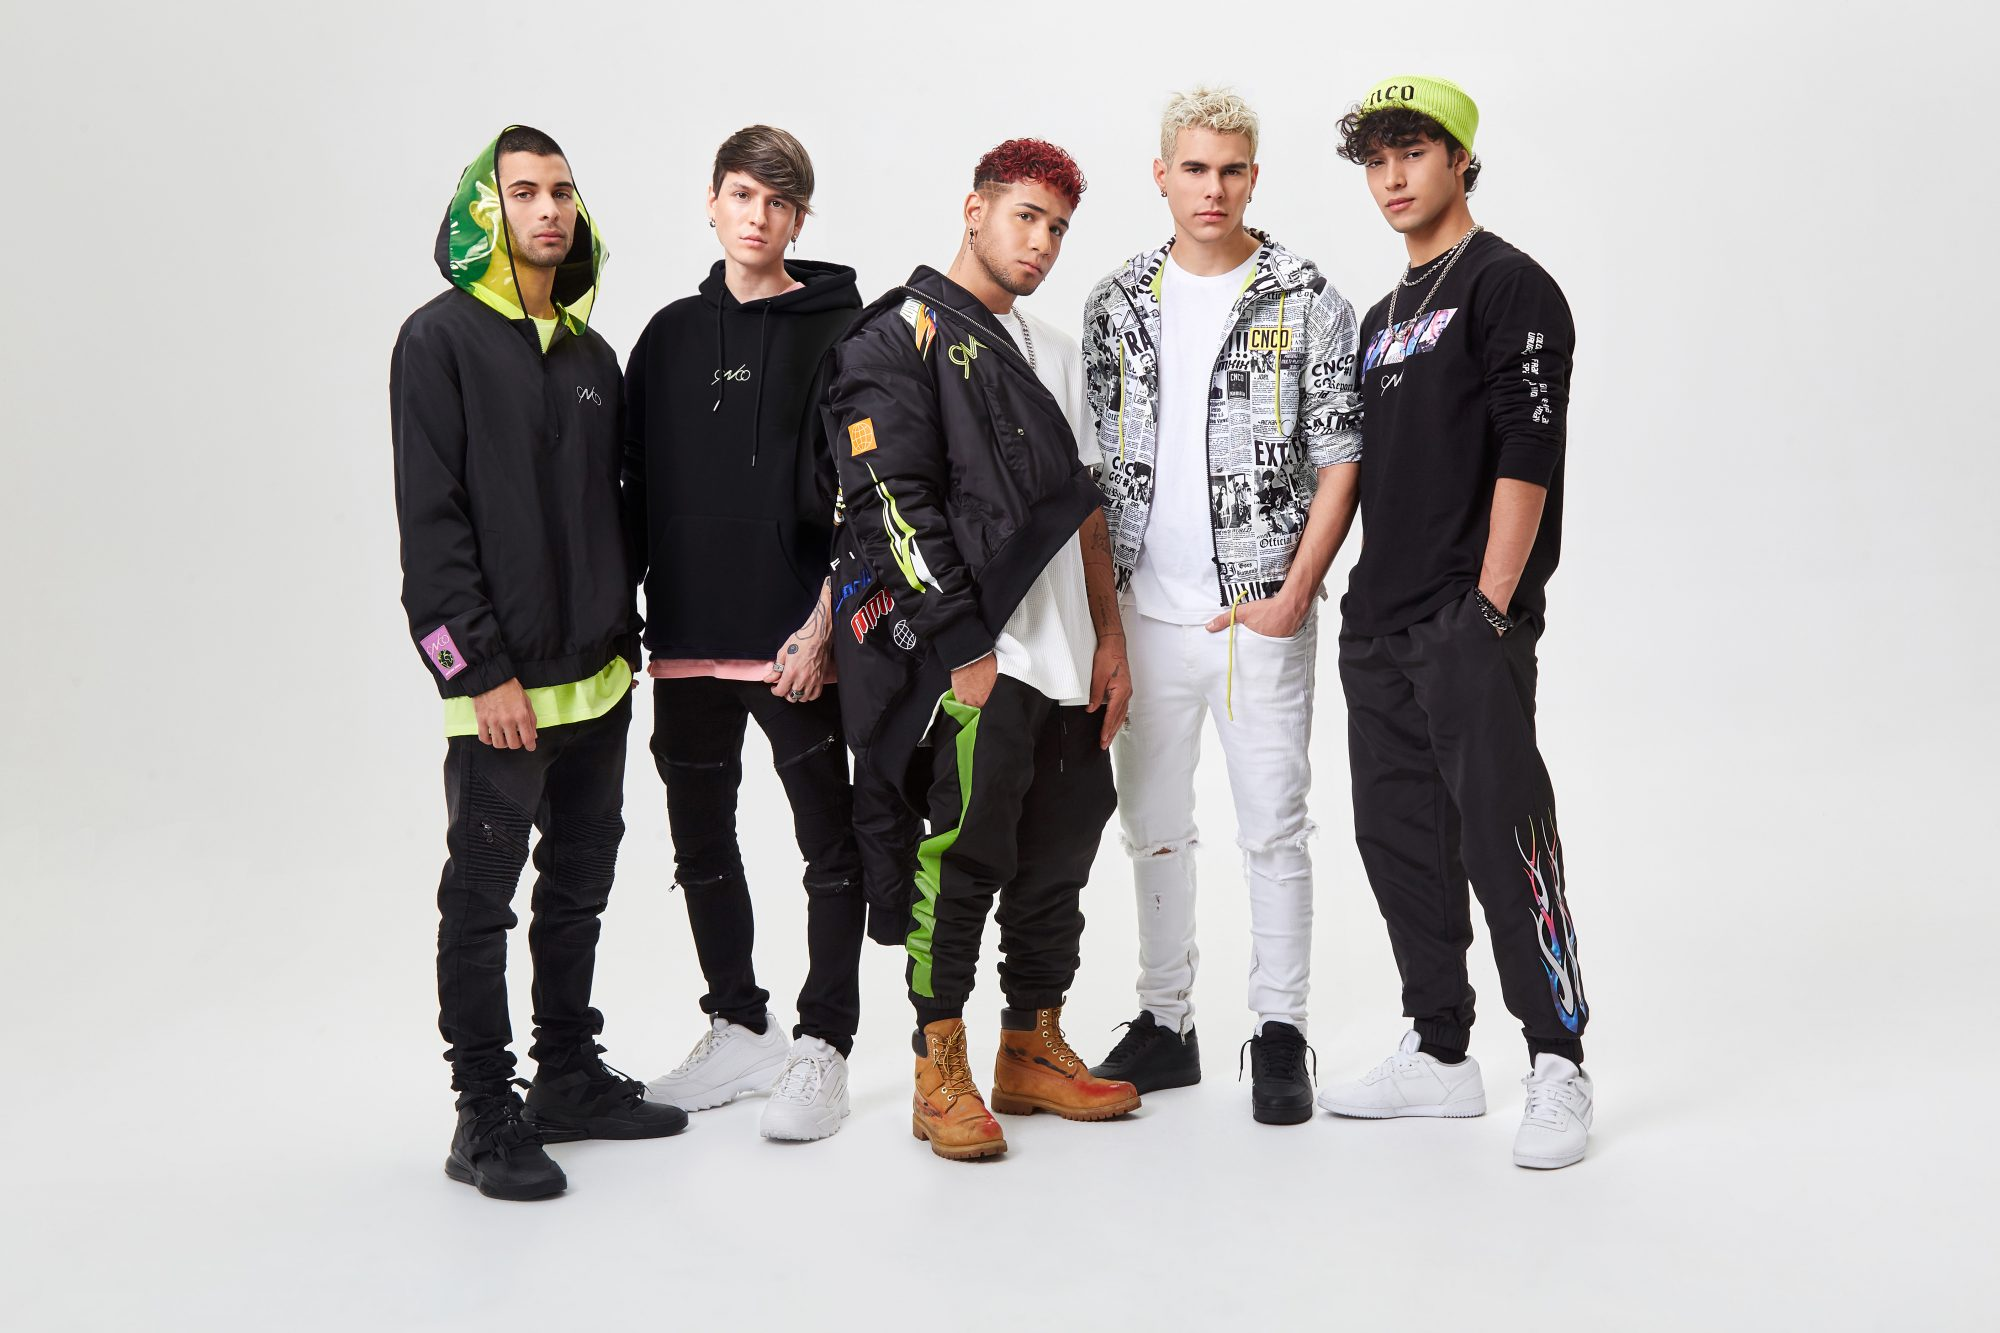 CNCO_Final_group